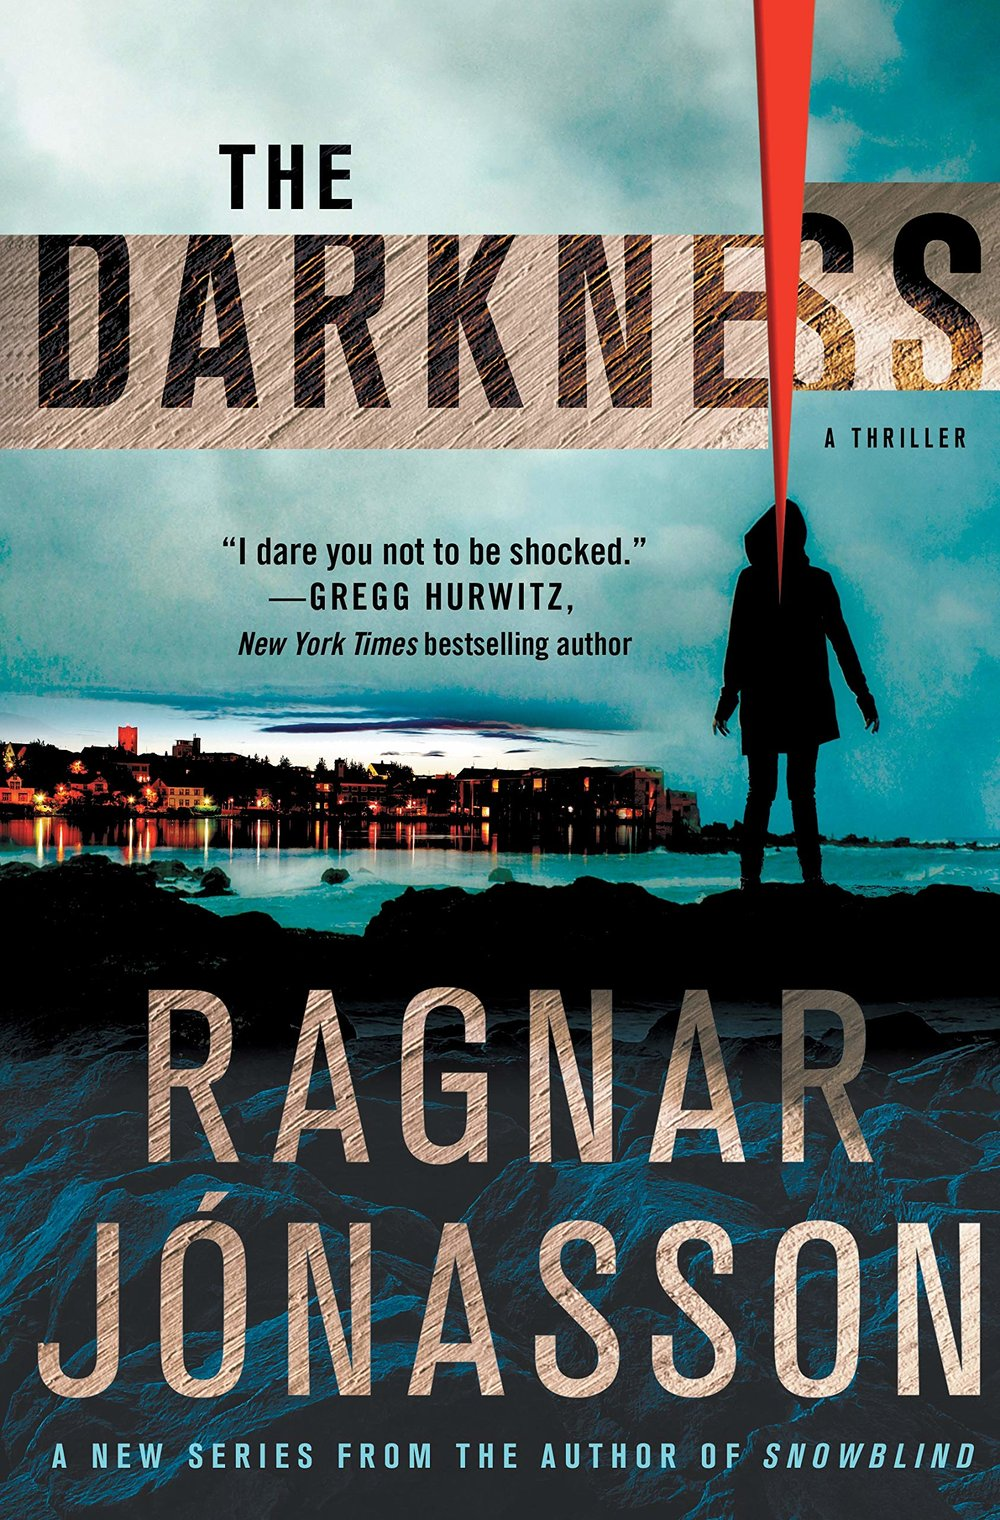 The Darkness Ragnar Jonasson.jpg